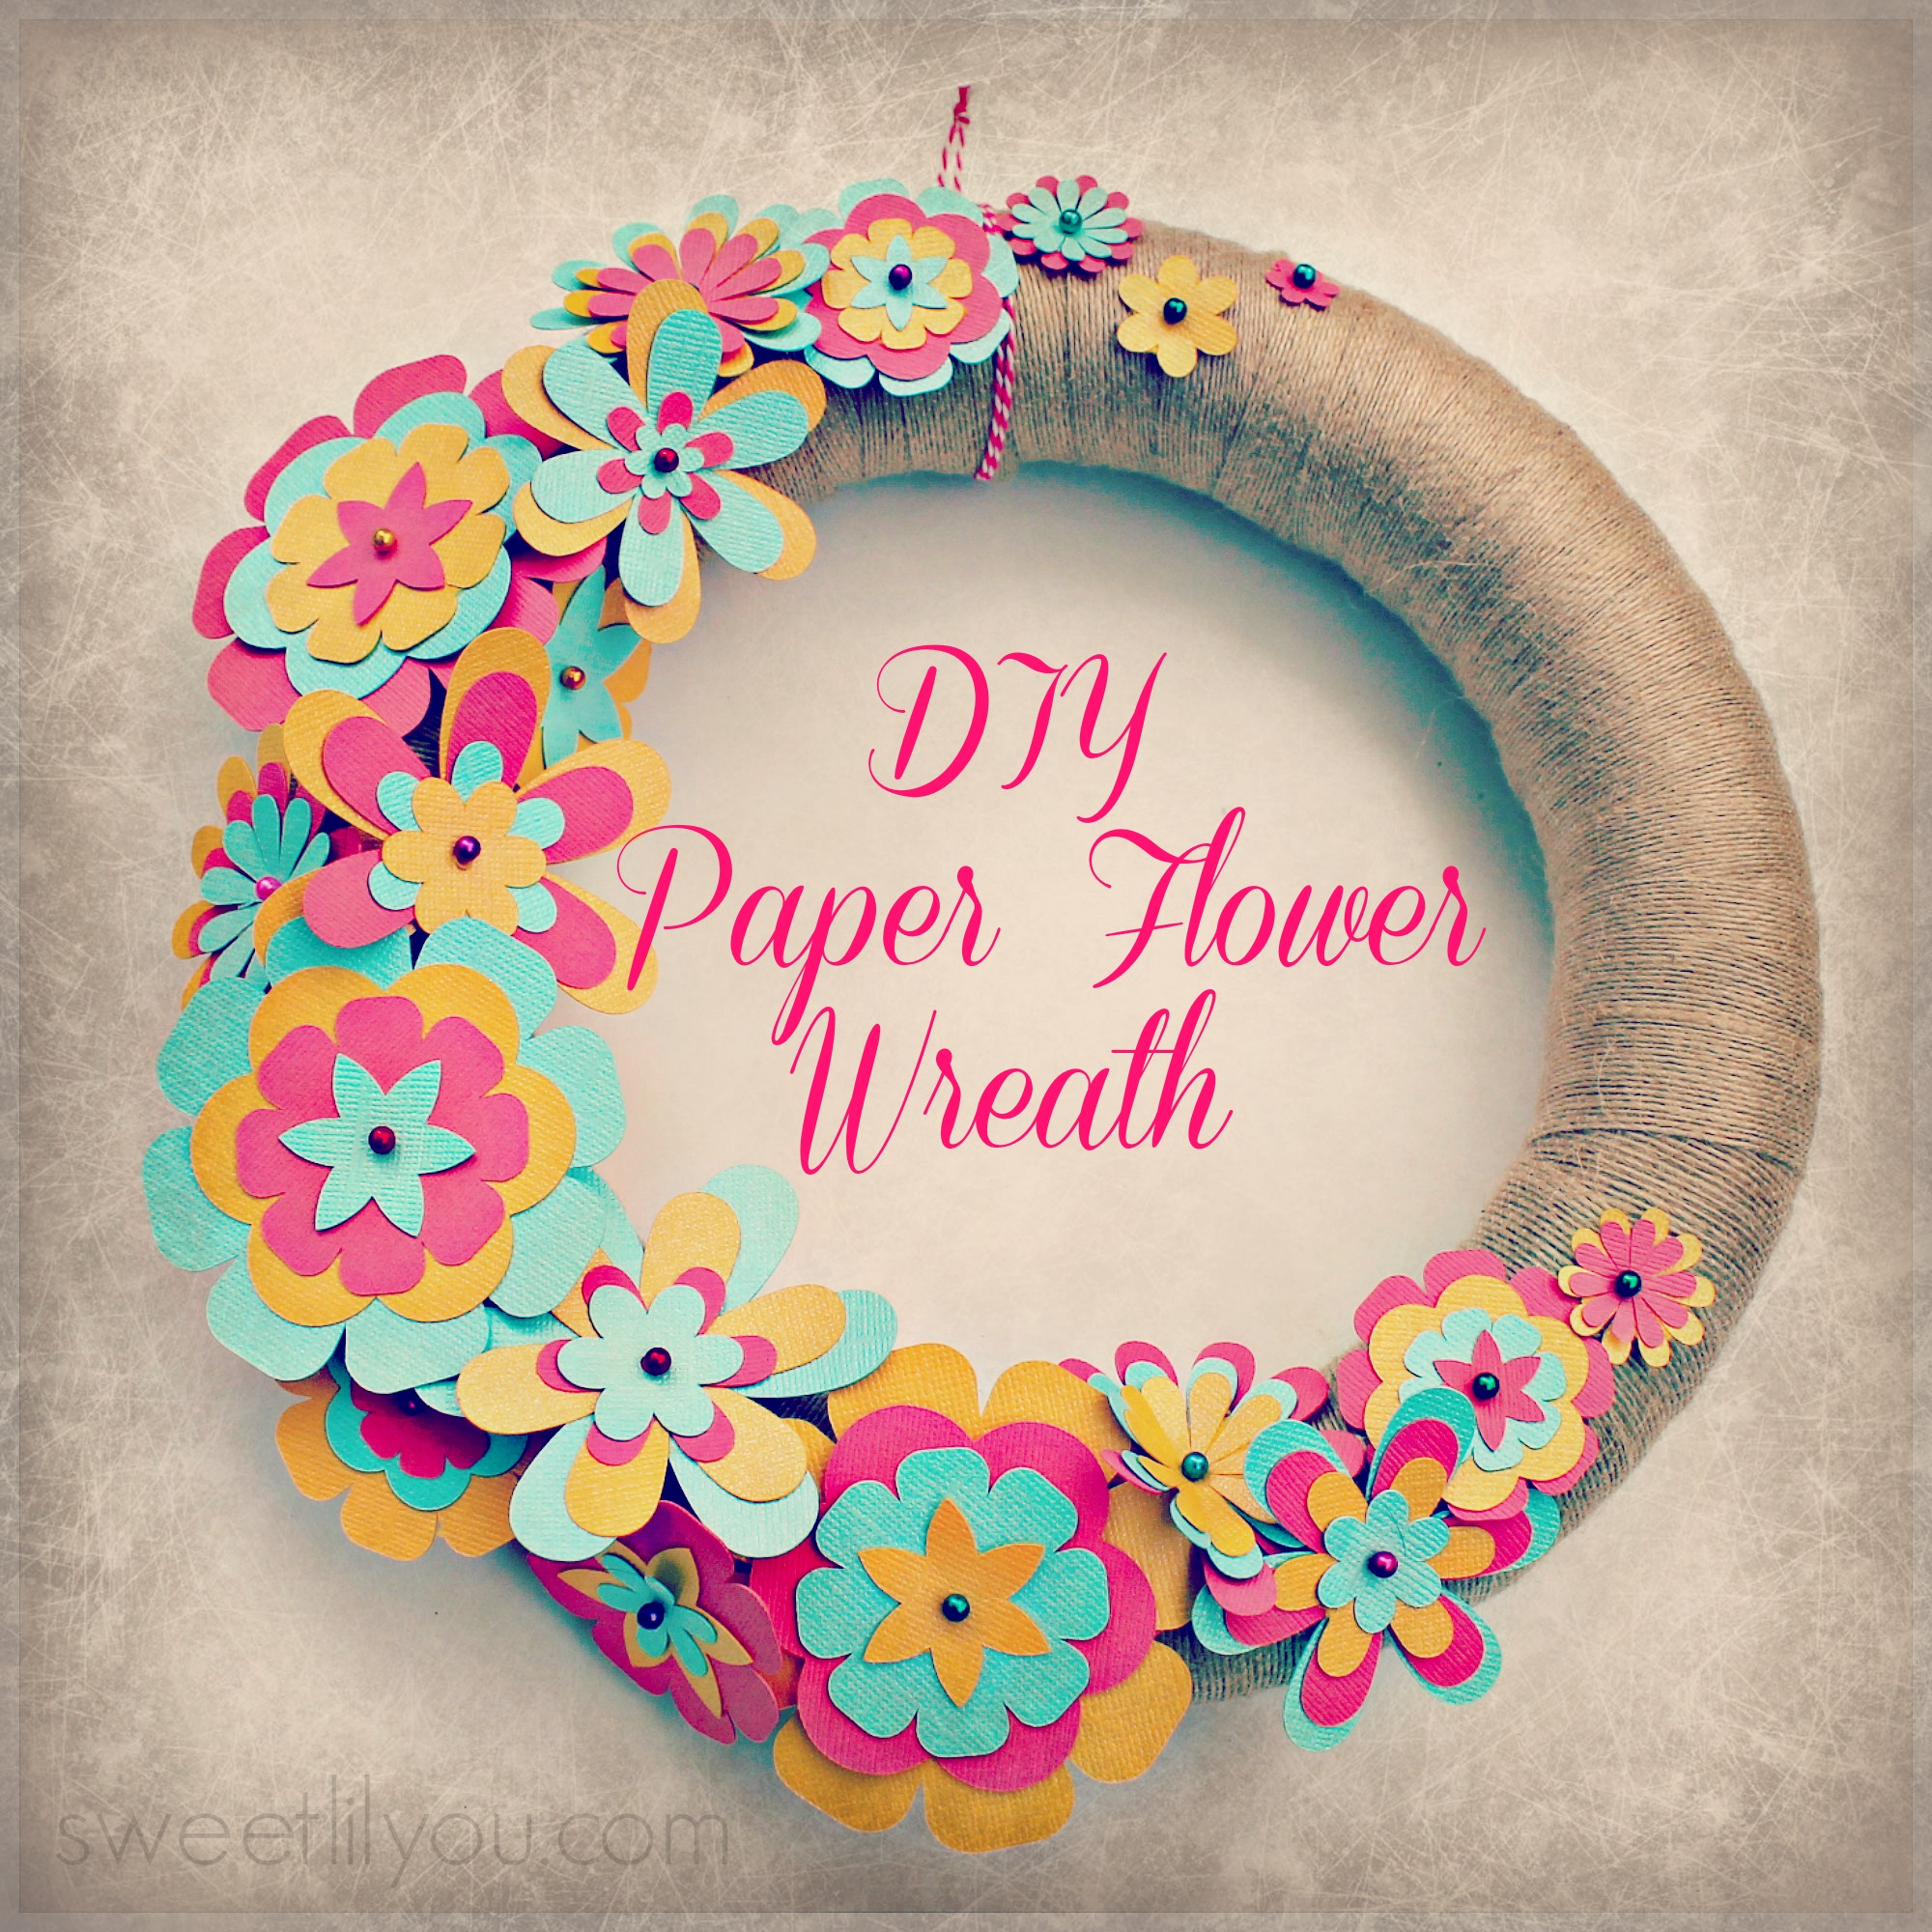 Easy diy paper flower wreath sweet lil you for Paper christmas decorations to make at home